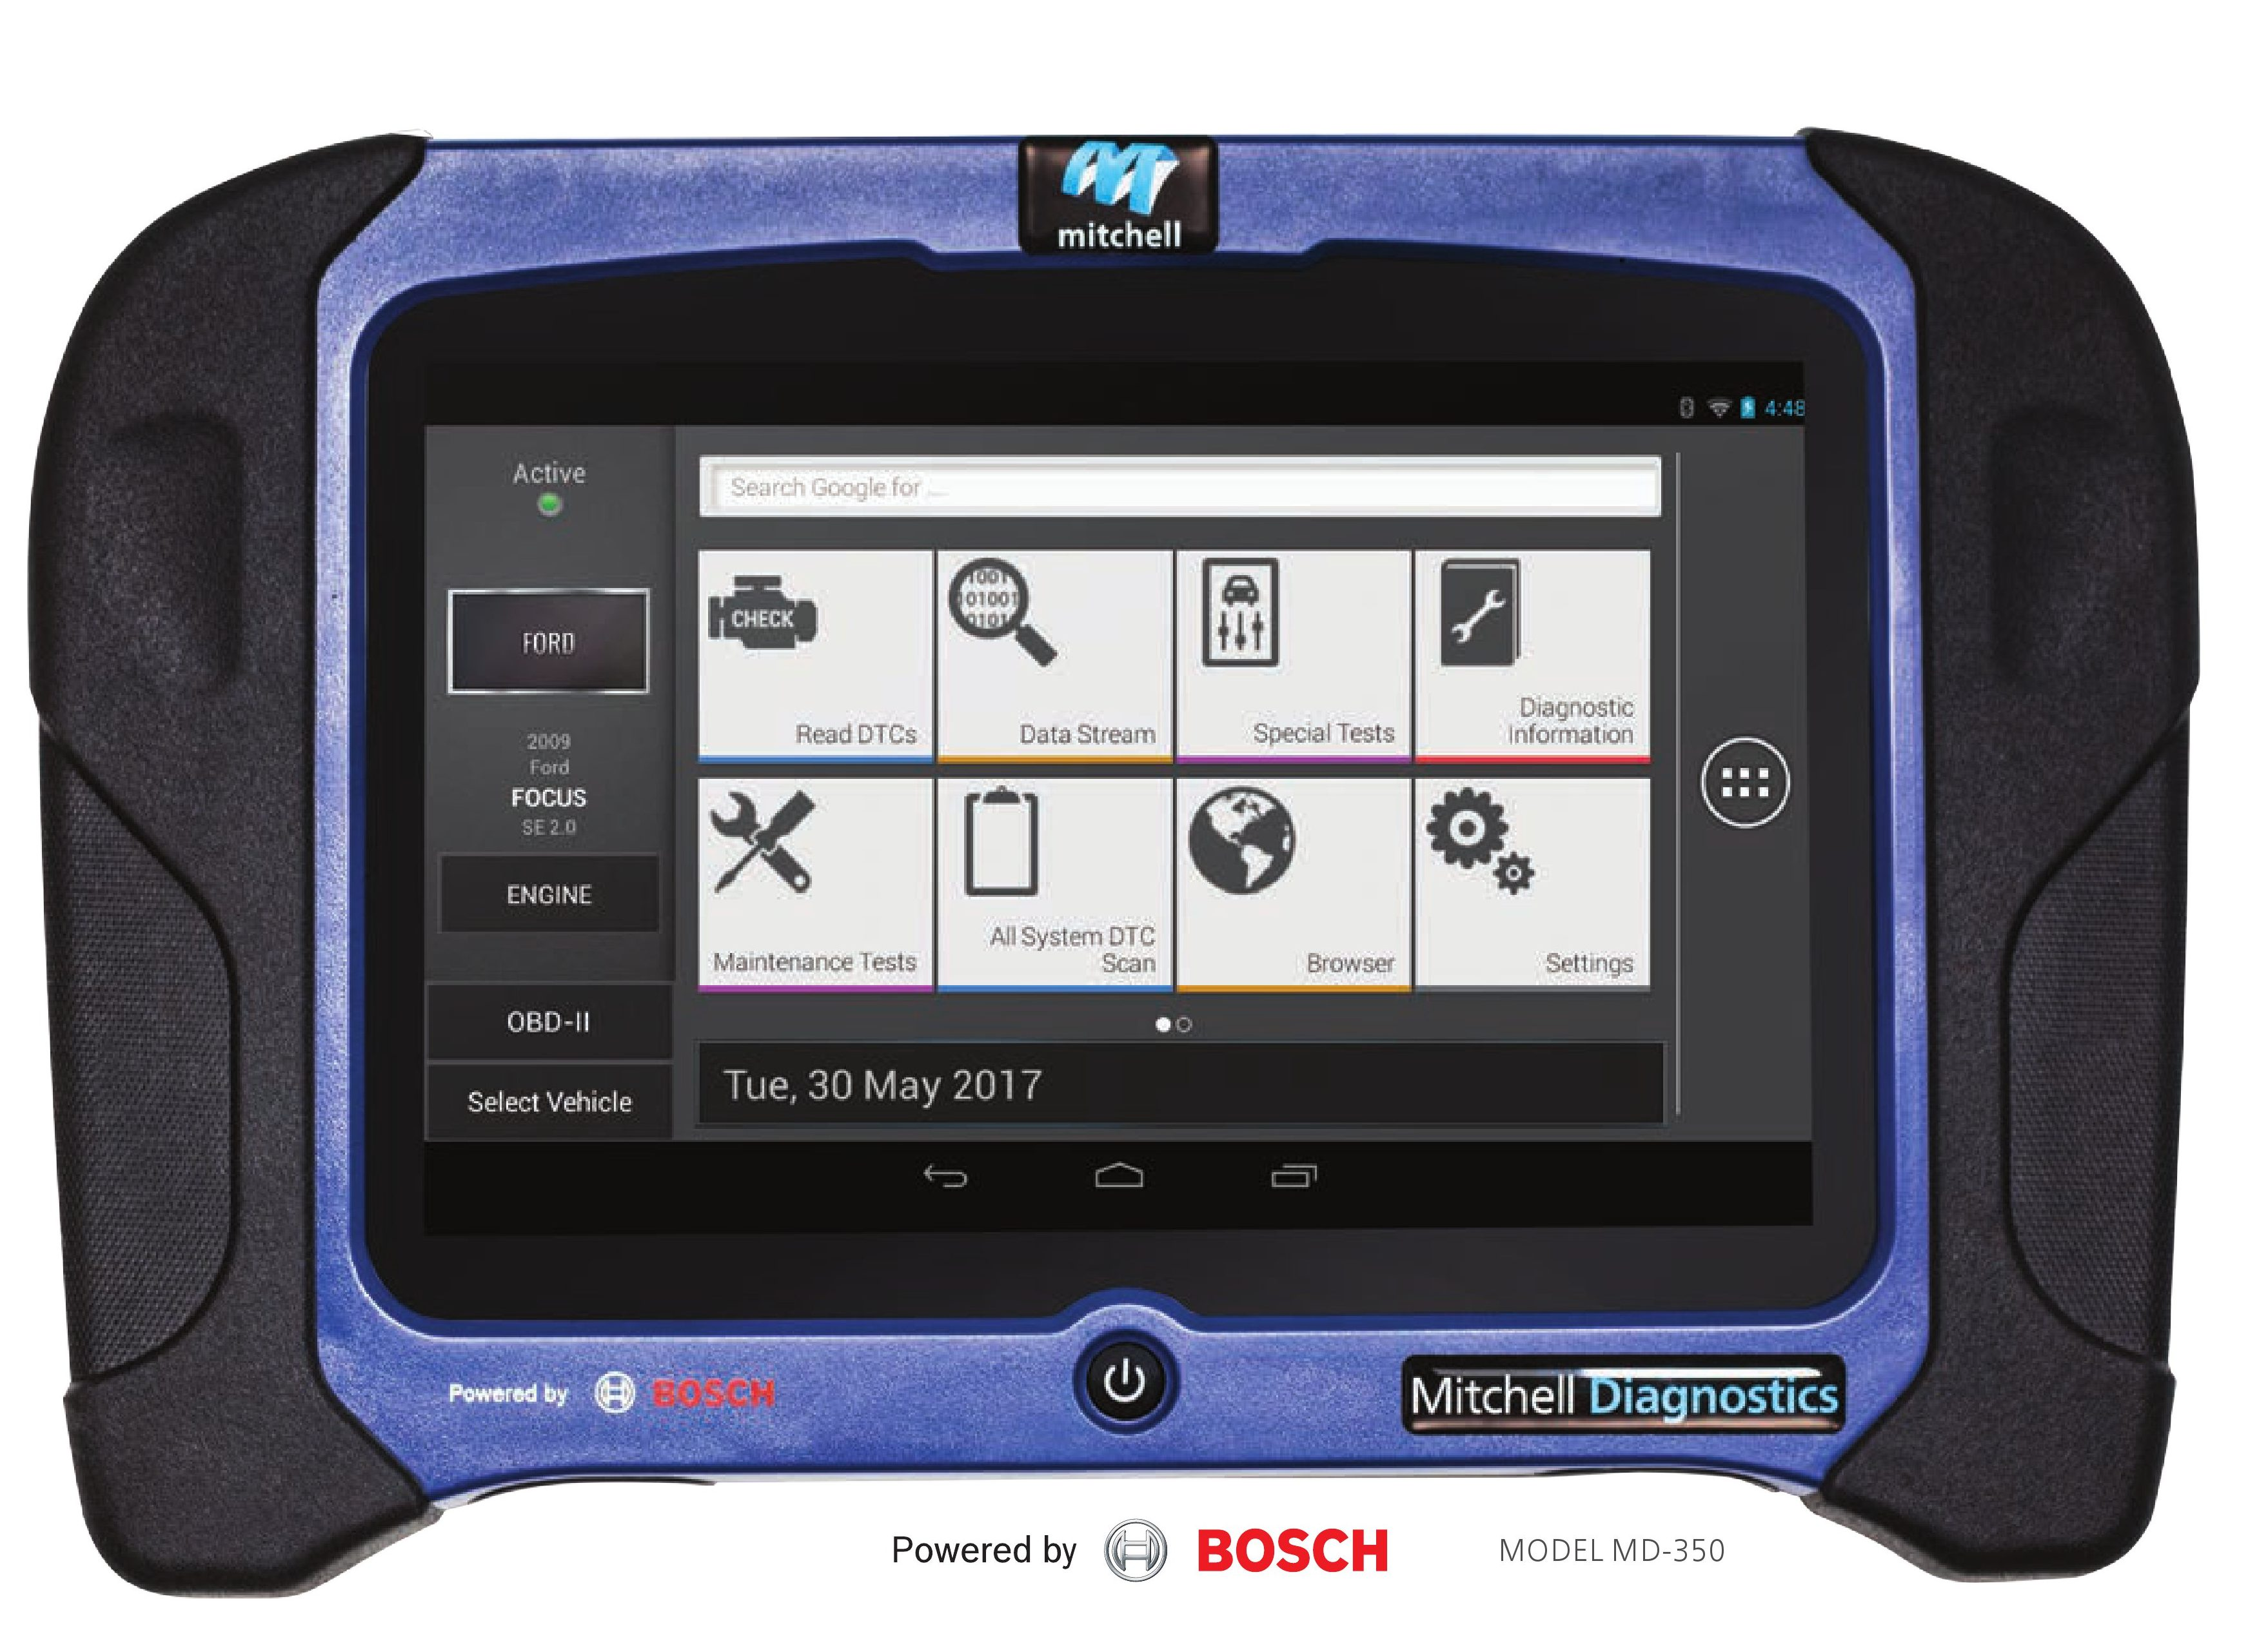 Mitchell gets into scanner business, partners with Bosch on devices